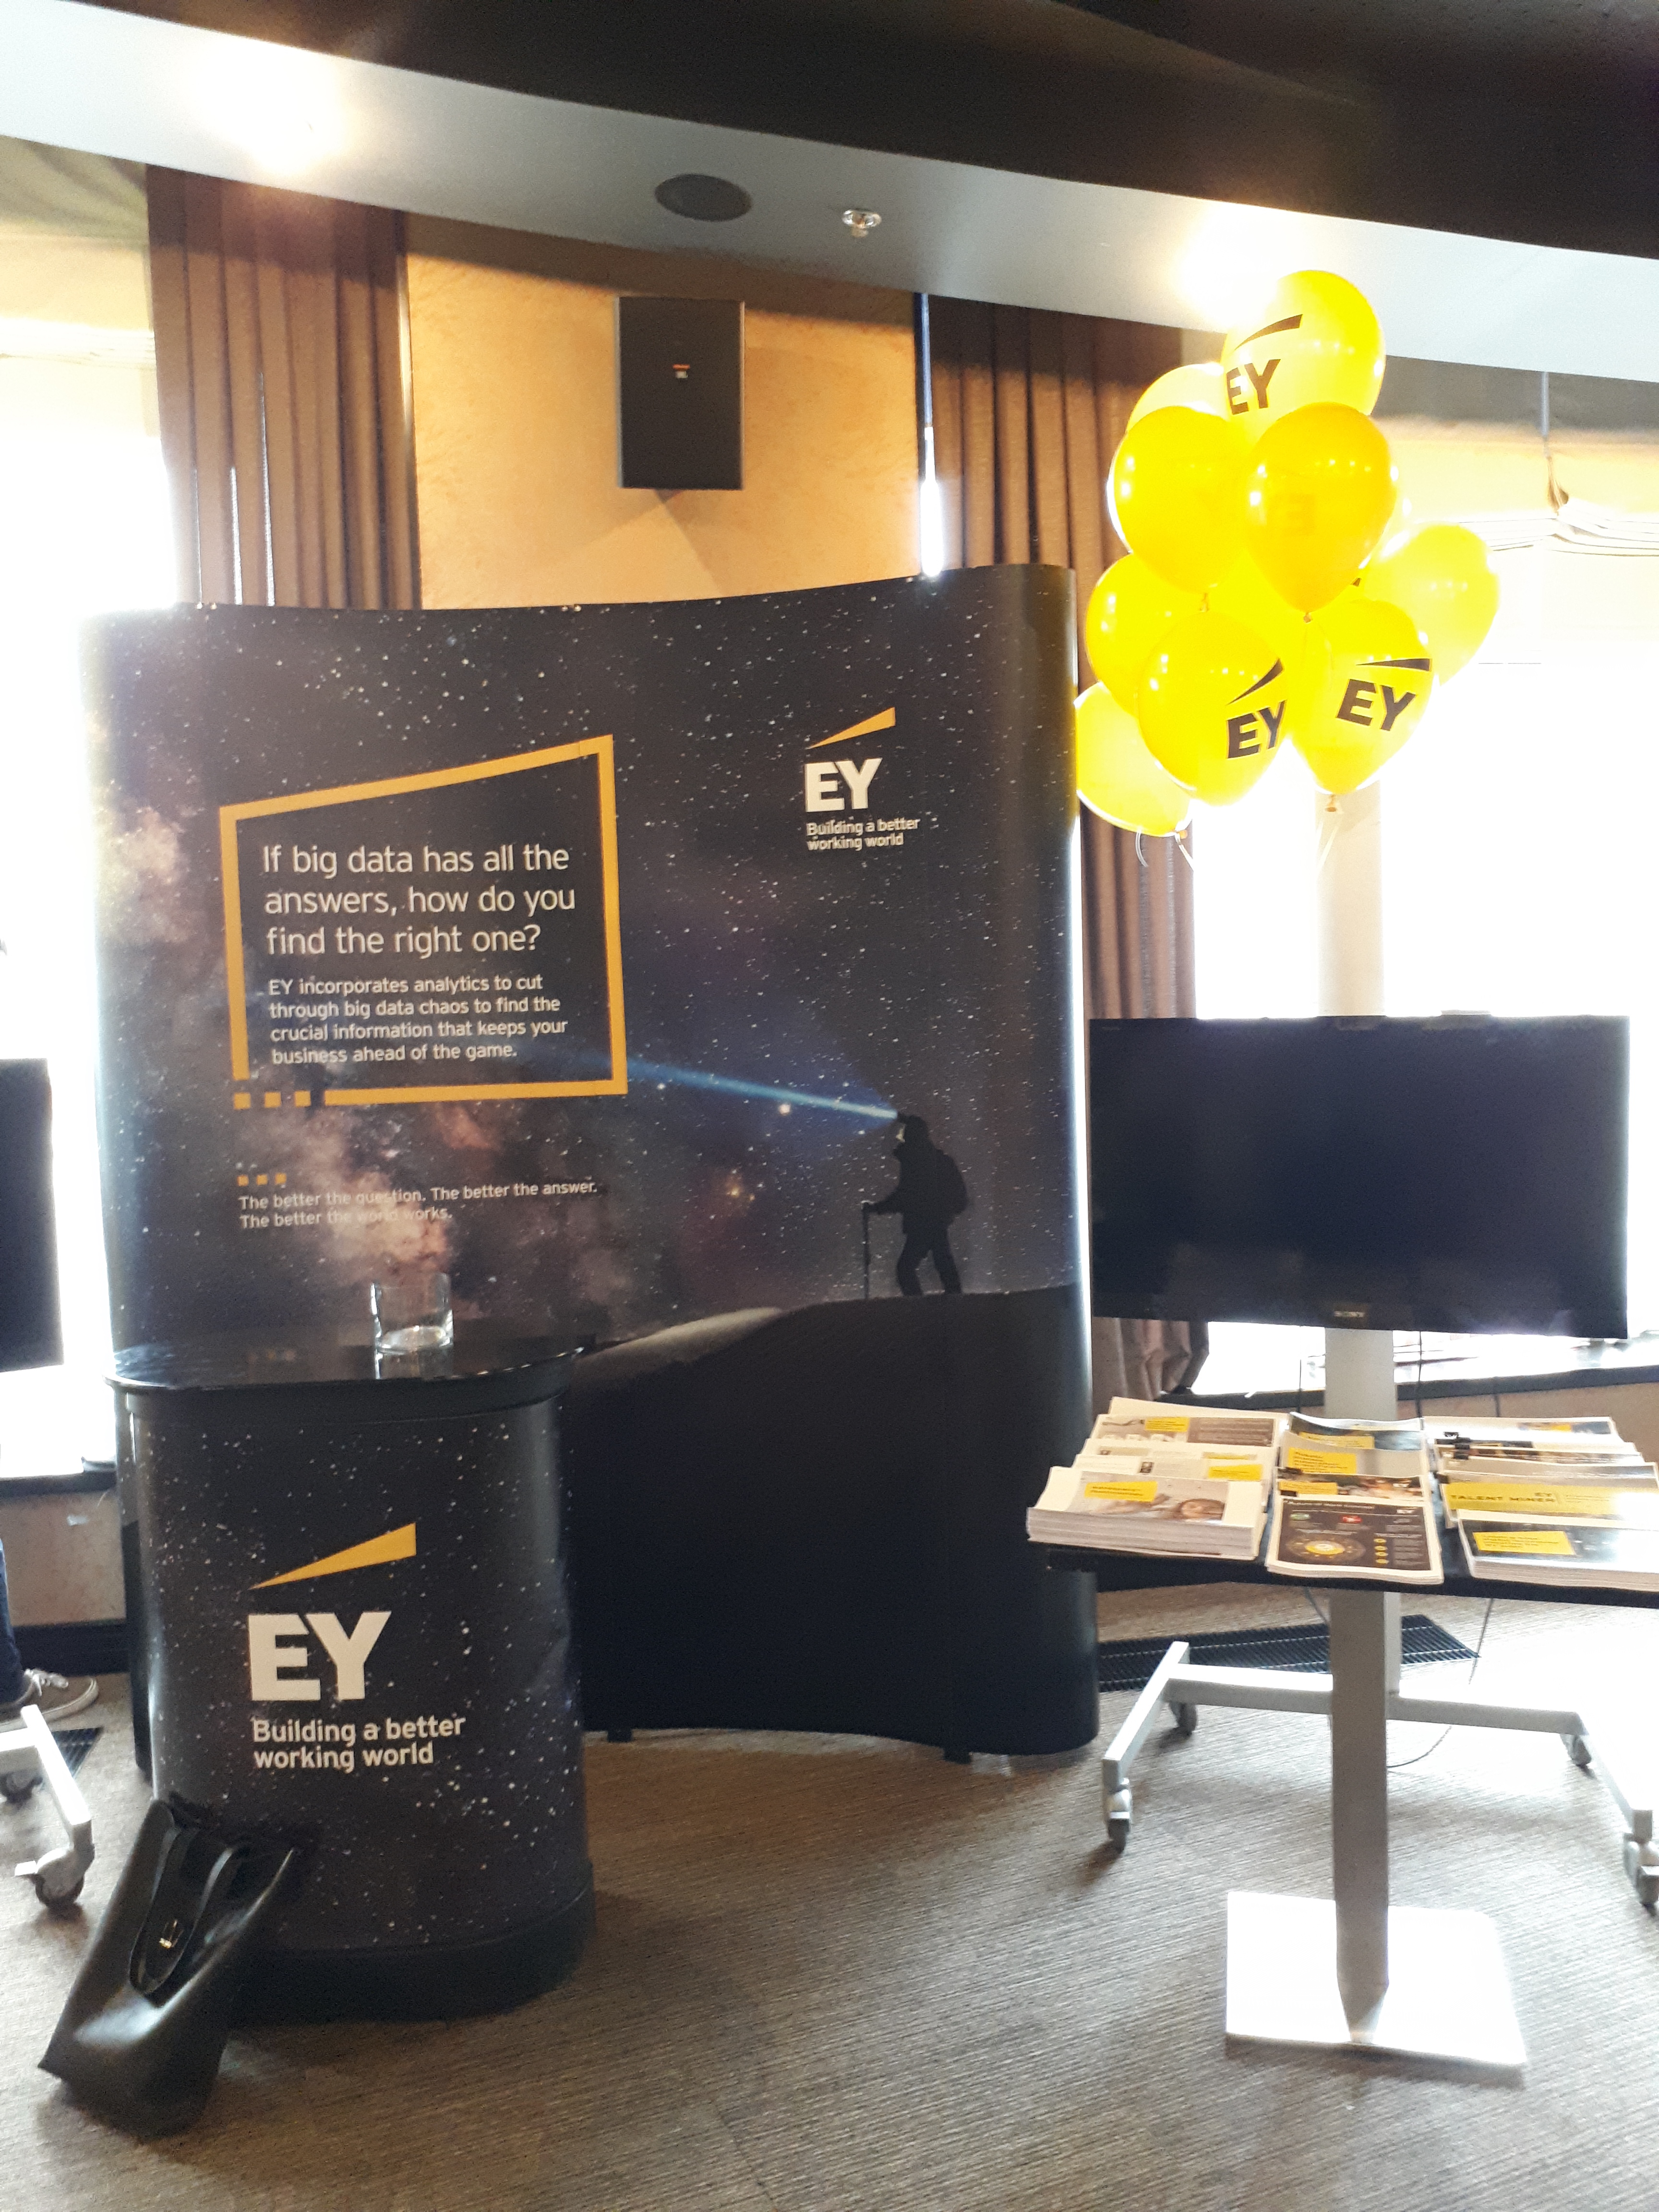 Promo materials Ernst & Young for business event